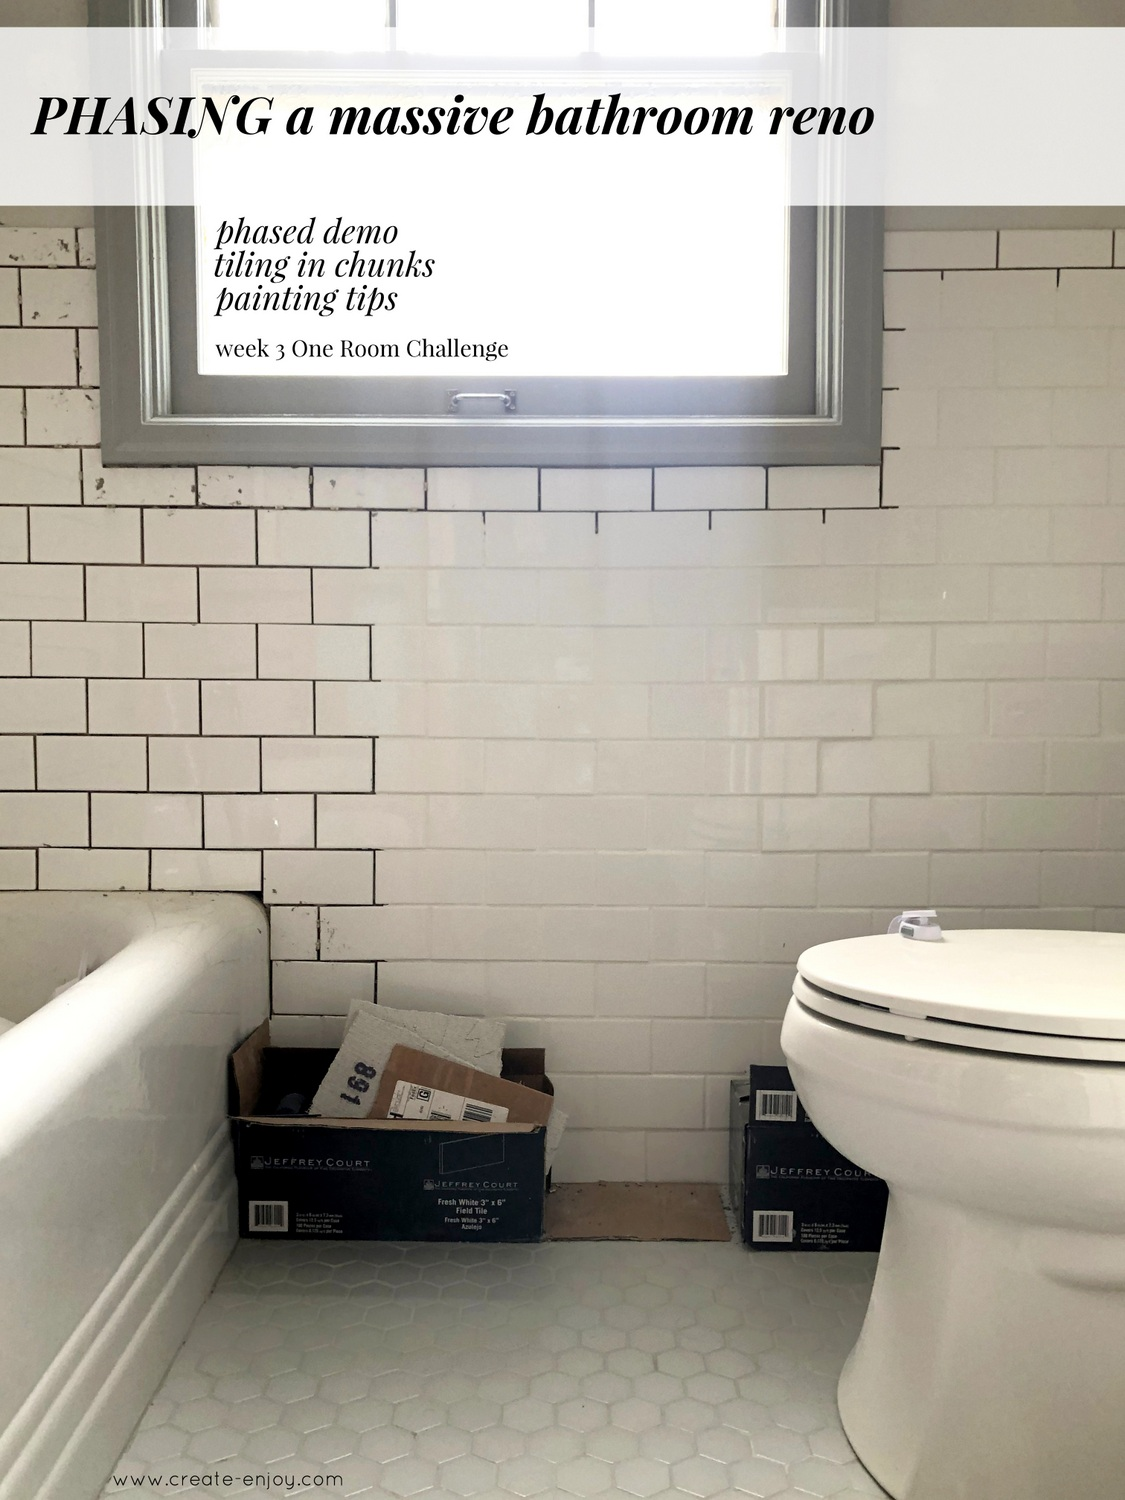 How To Phase A Bathroom Reno Keep That, Can You Paint Over Bathroom Tile